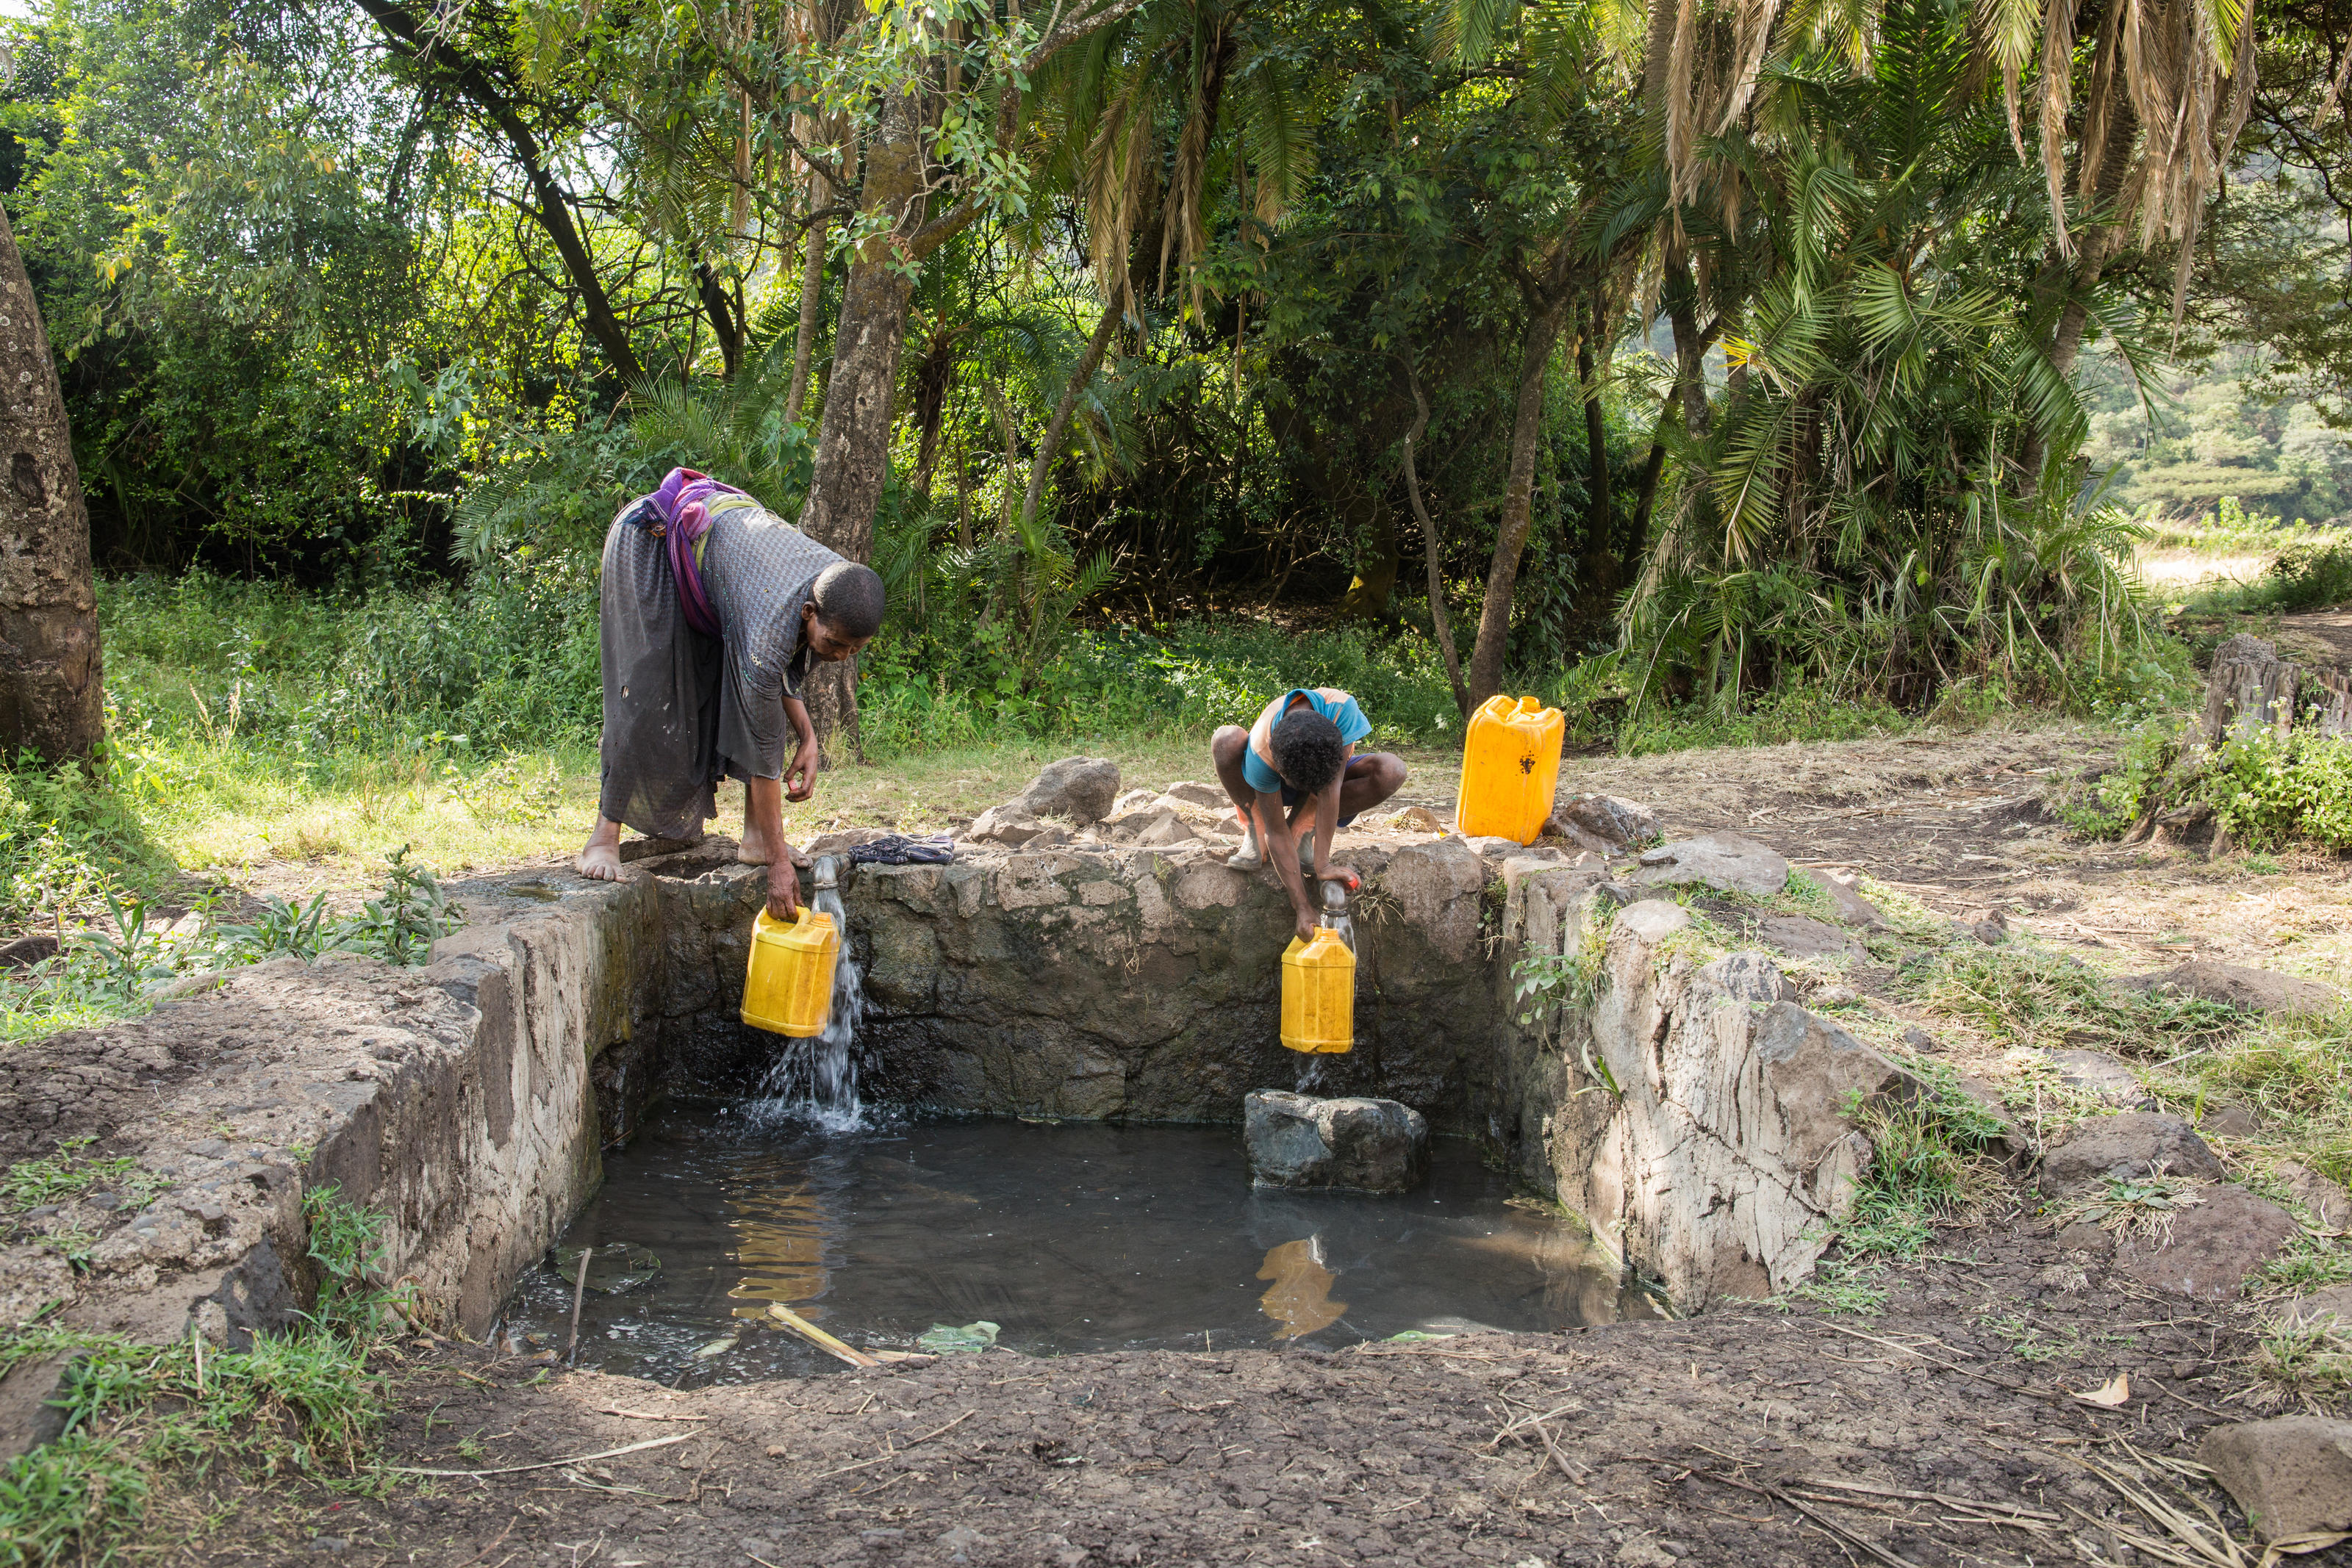 Tirunesh Alemu, employed by Yiraber Health Centre to fetch 40 litres of water per day, collecting water from the nearest water source 15-minutes walk away, Jabi Tehnan, West Gojjam, Ethiopia, December 2018.